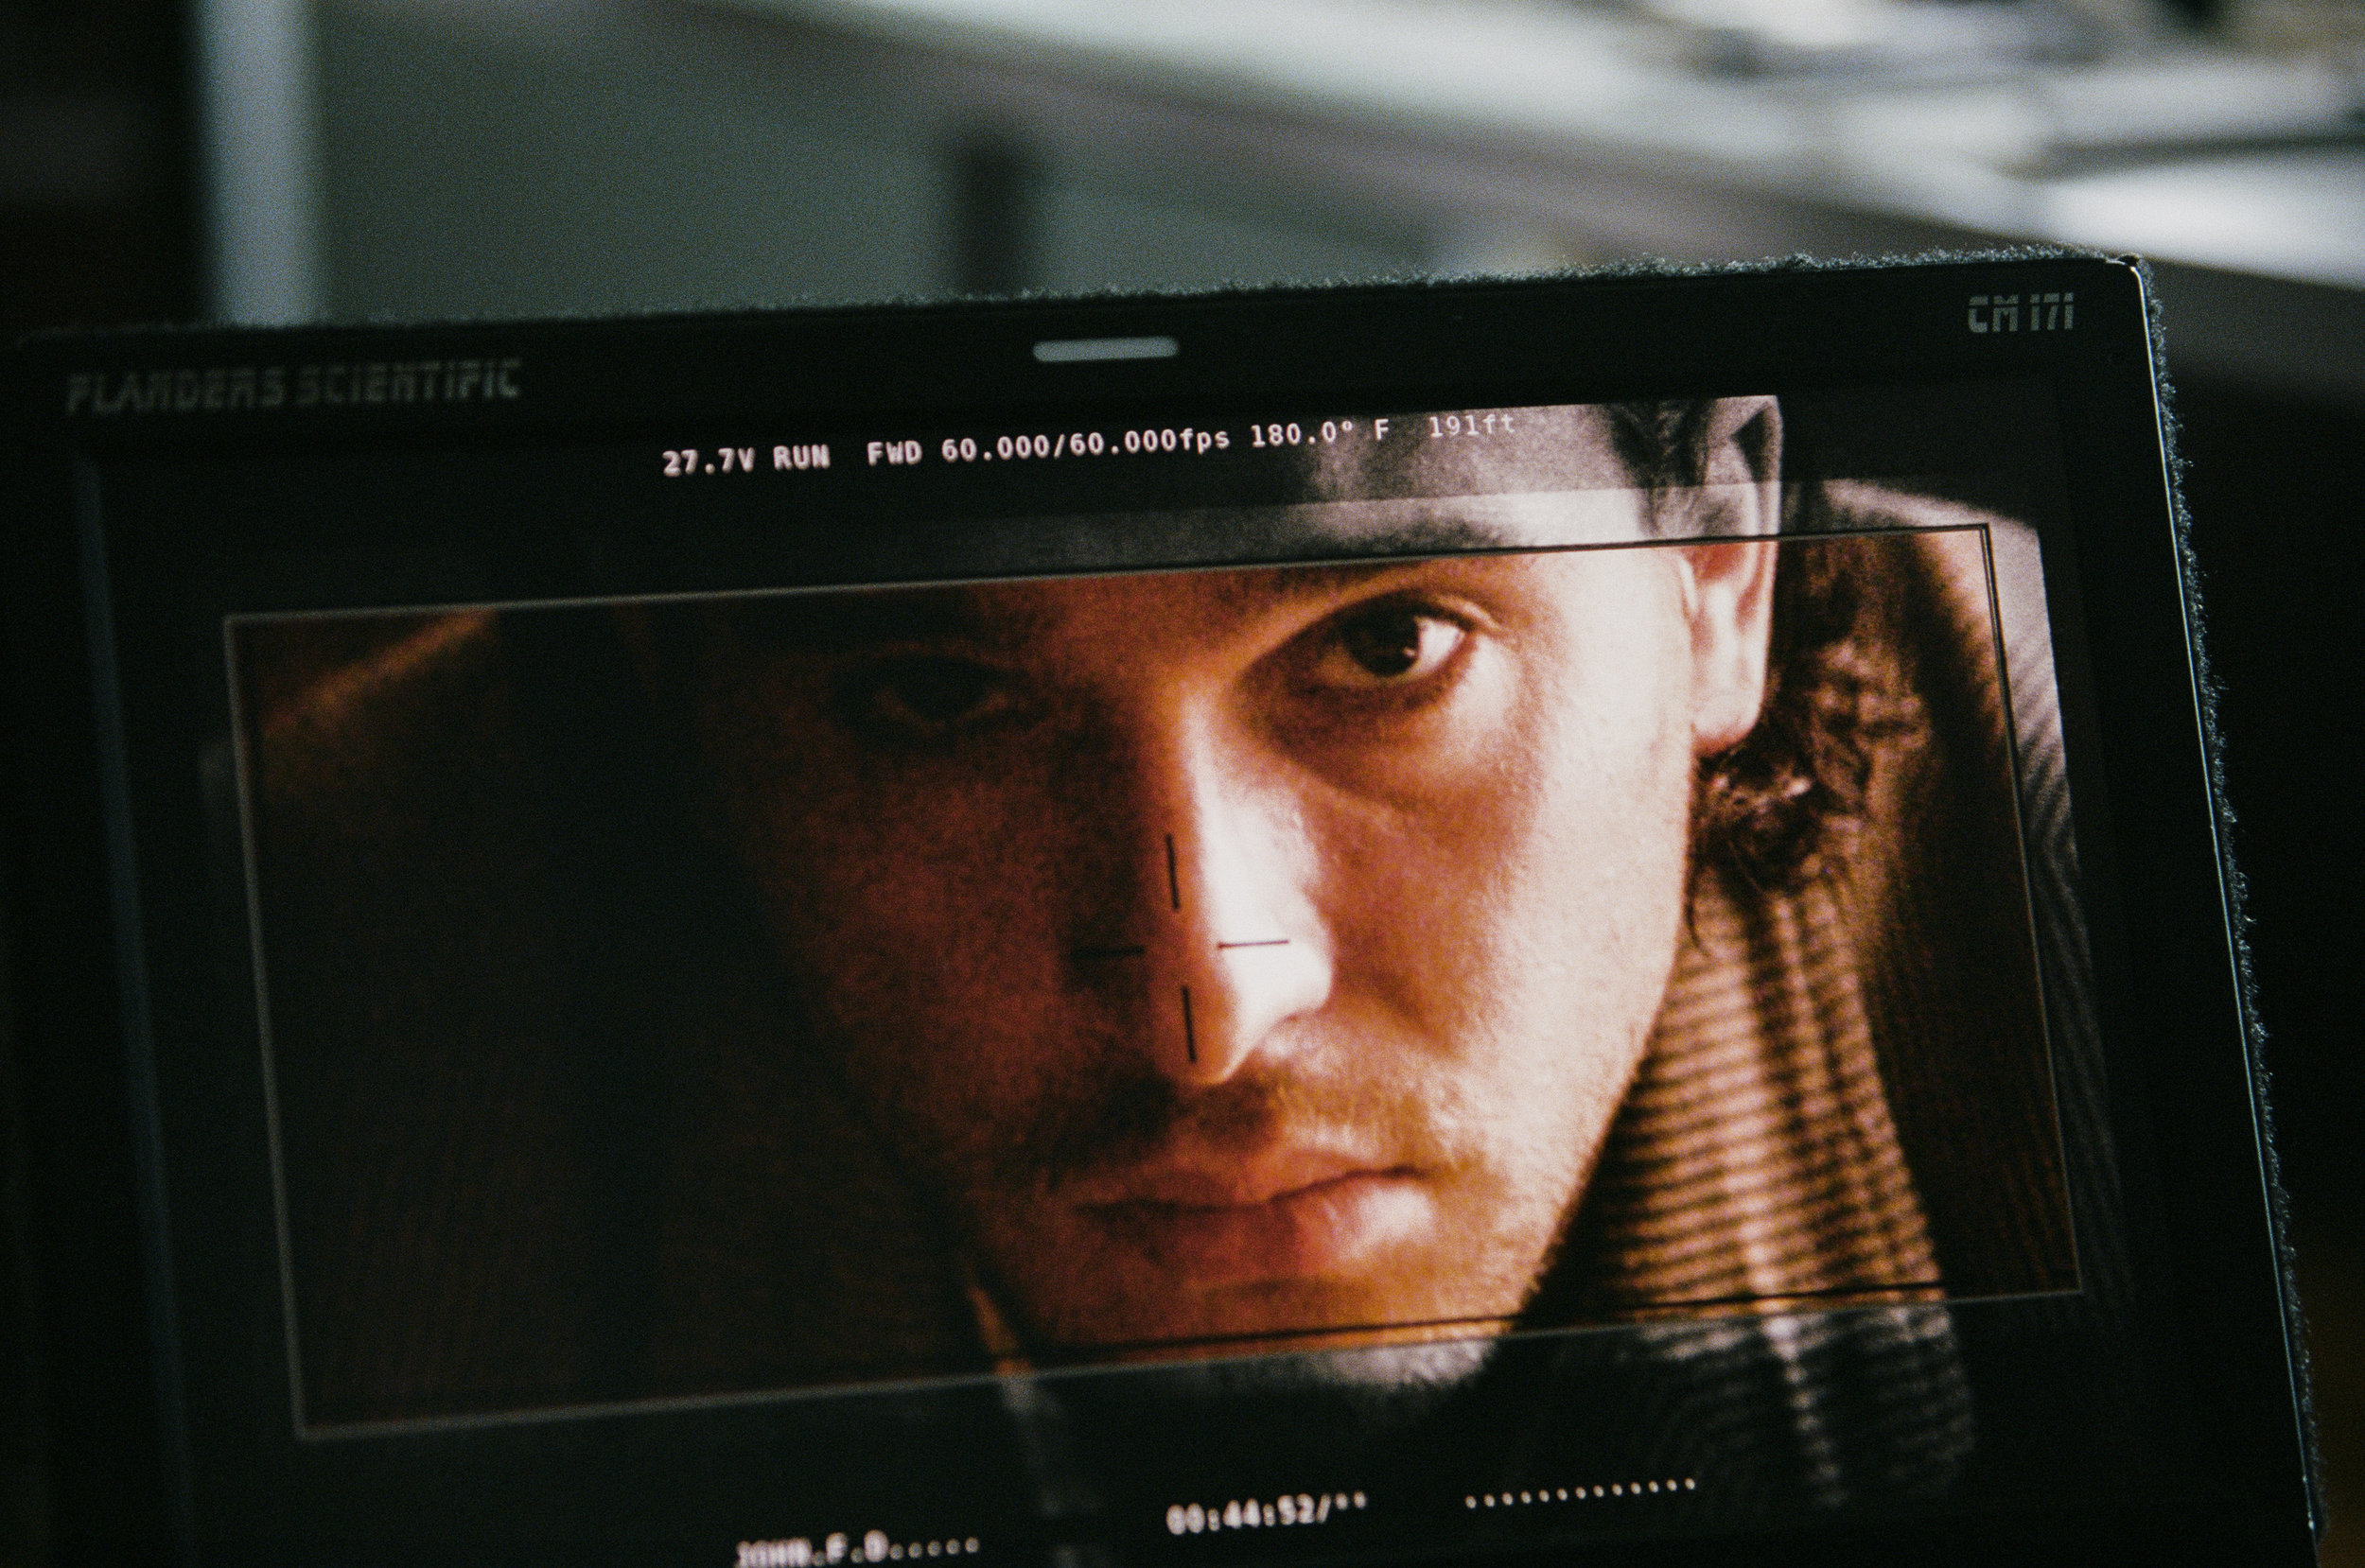 Kit Harrington plays a doomed charismatic famous actor in The Death and Life of John F. Donovan